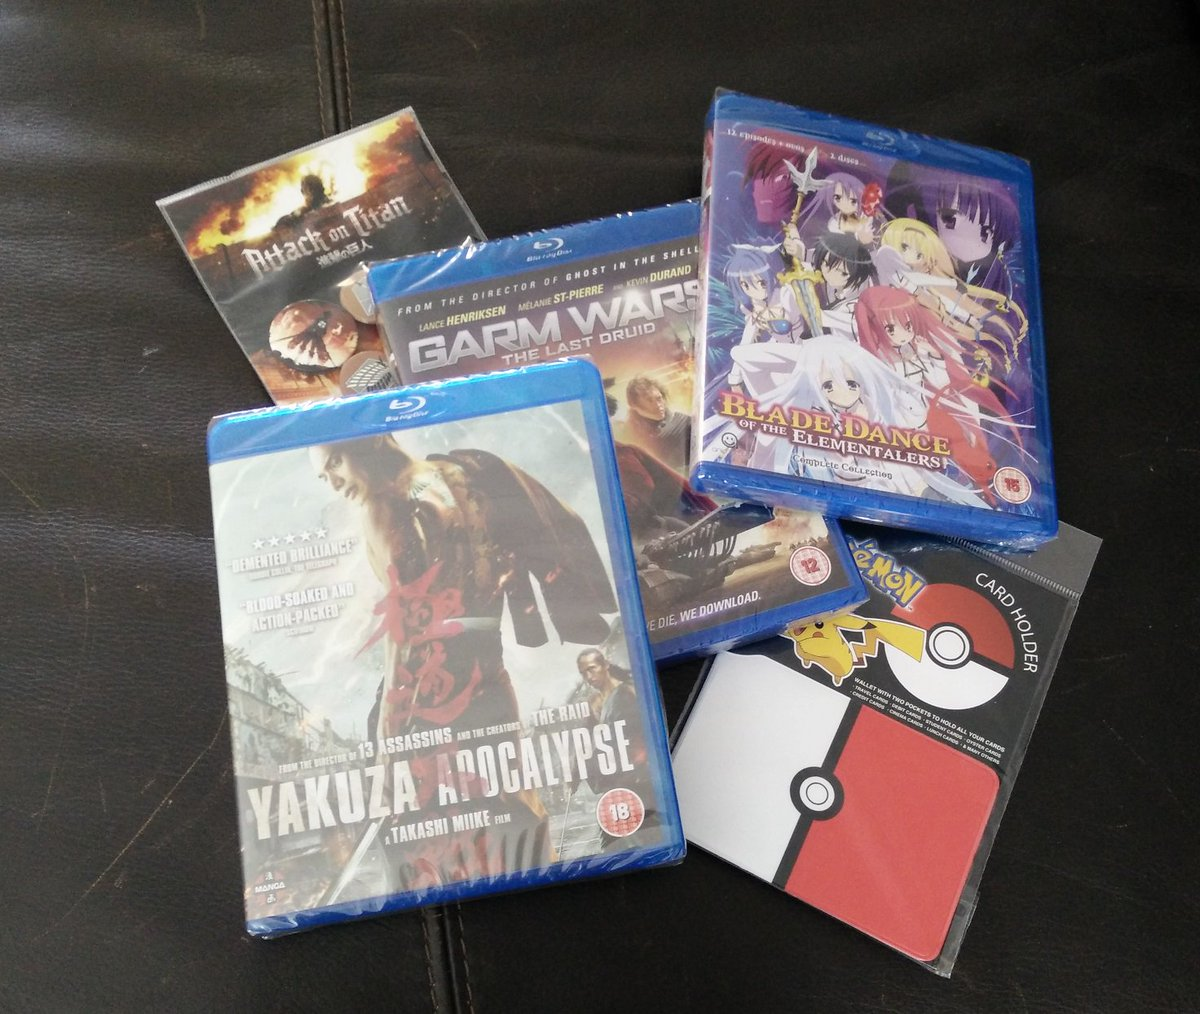 Follow & RT for a chance to win 1 of 3 prize bundles, including a #YakuzaApocalypse BD! UK only, ends midnight Sun. https://t.co/JGn5FAhGU2